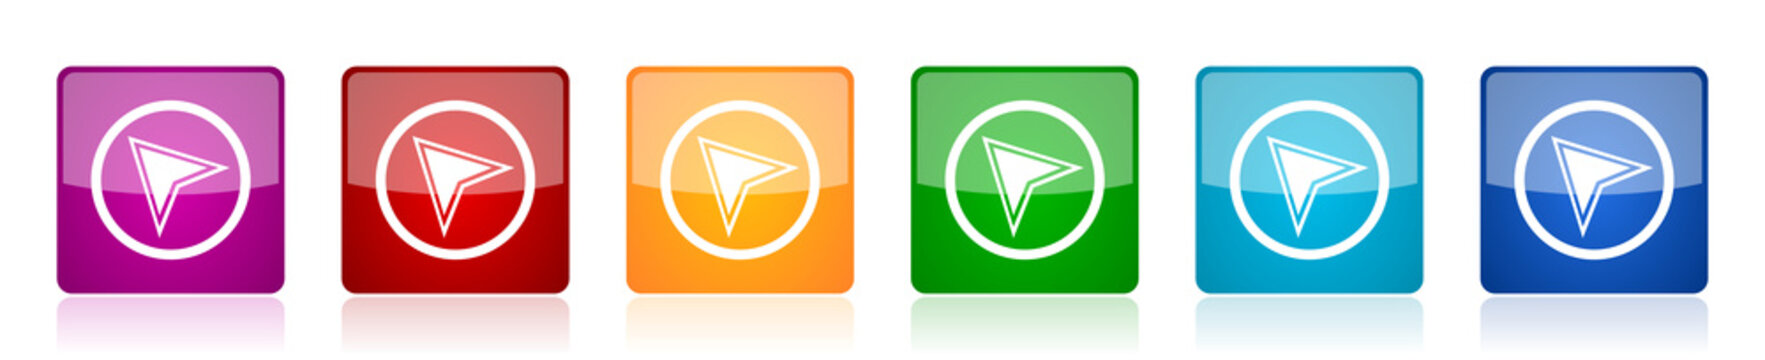 Navigation icon set, colorful square glossy vector illustrations in 6 options for web design and mobile applications